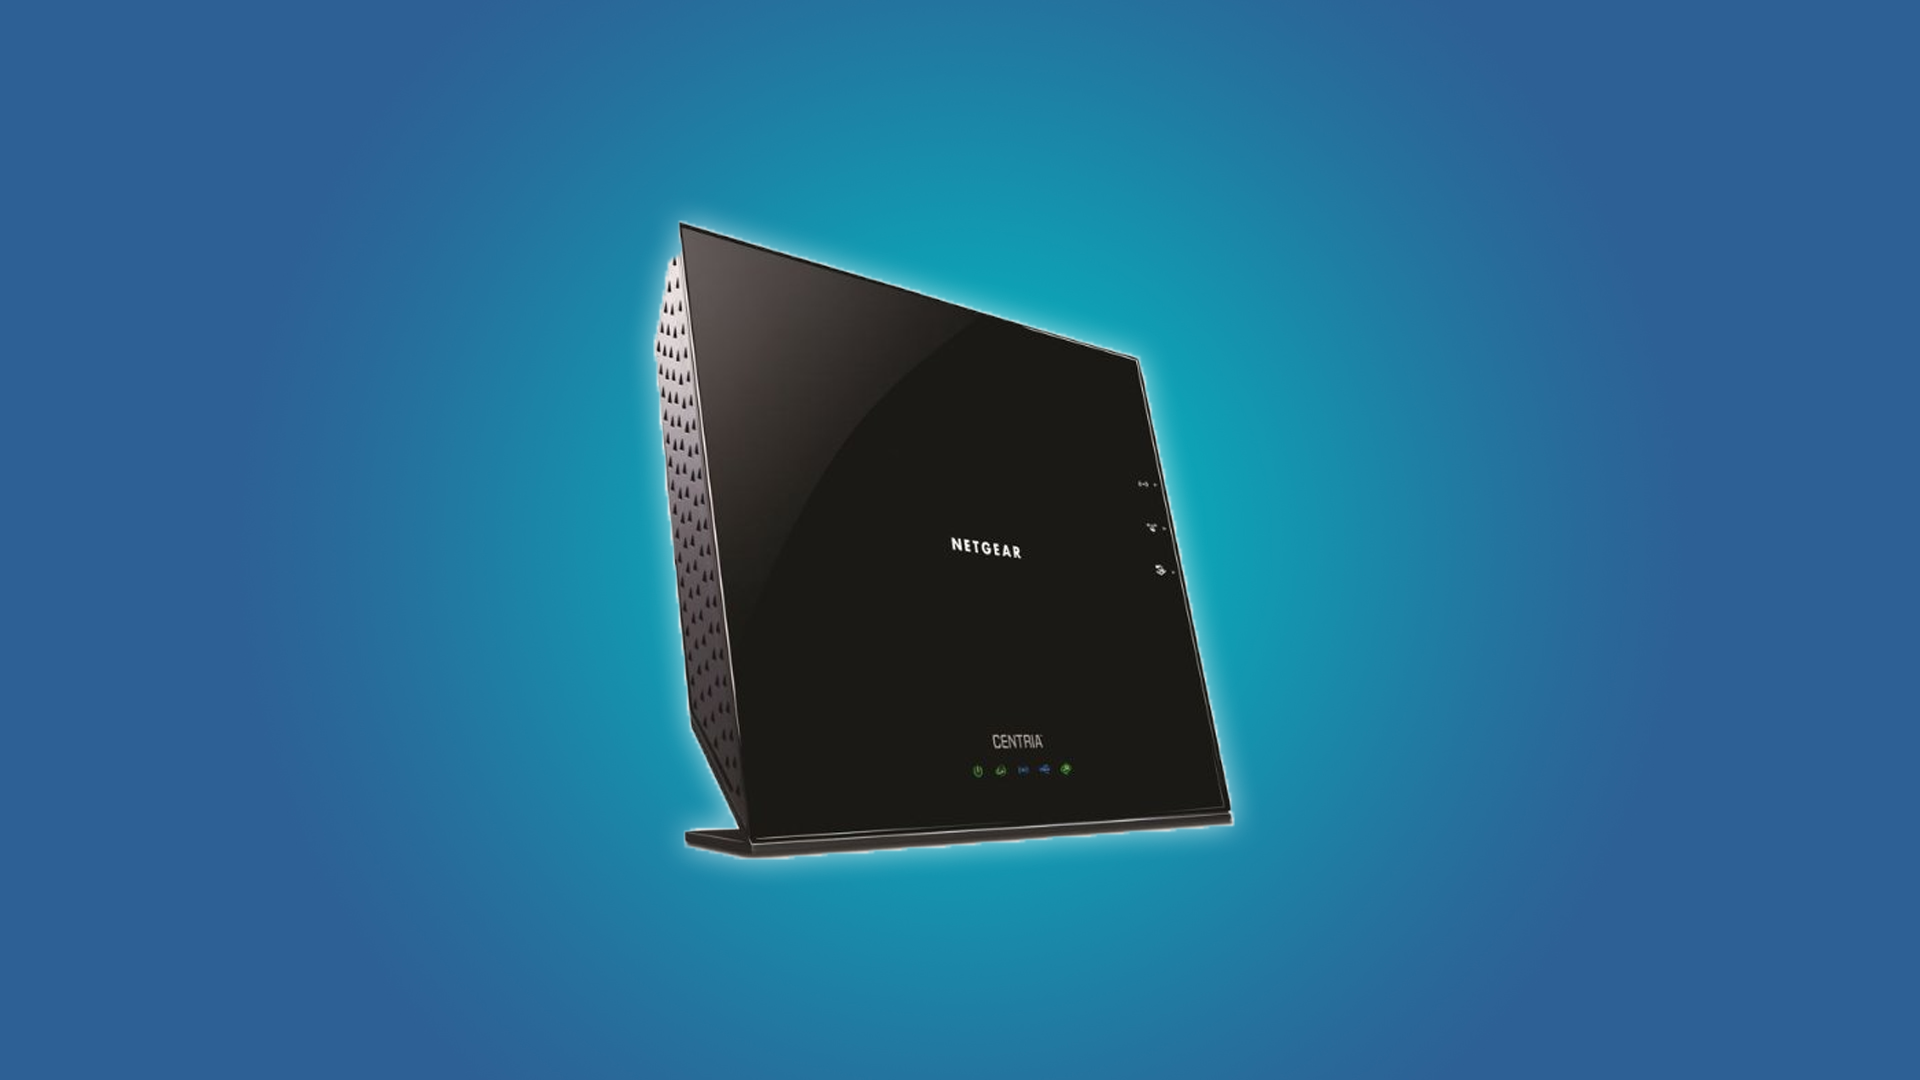 NETGEAR N900 Router with 2TB of Built-In Storage